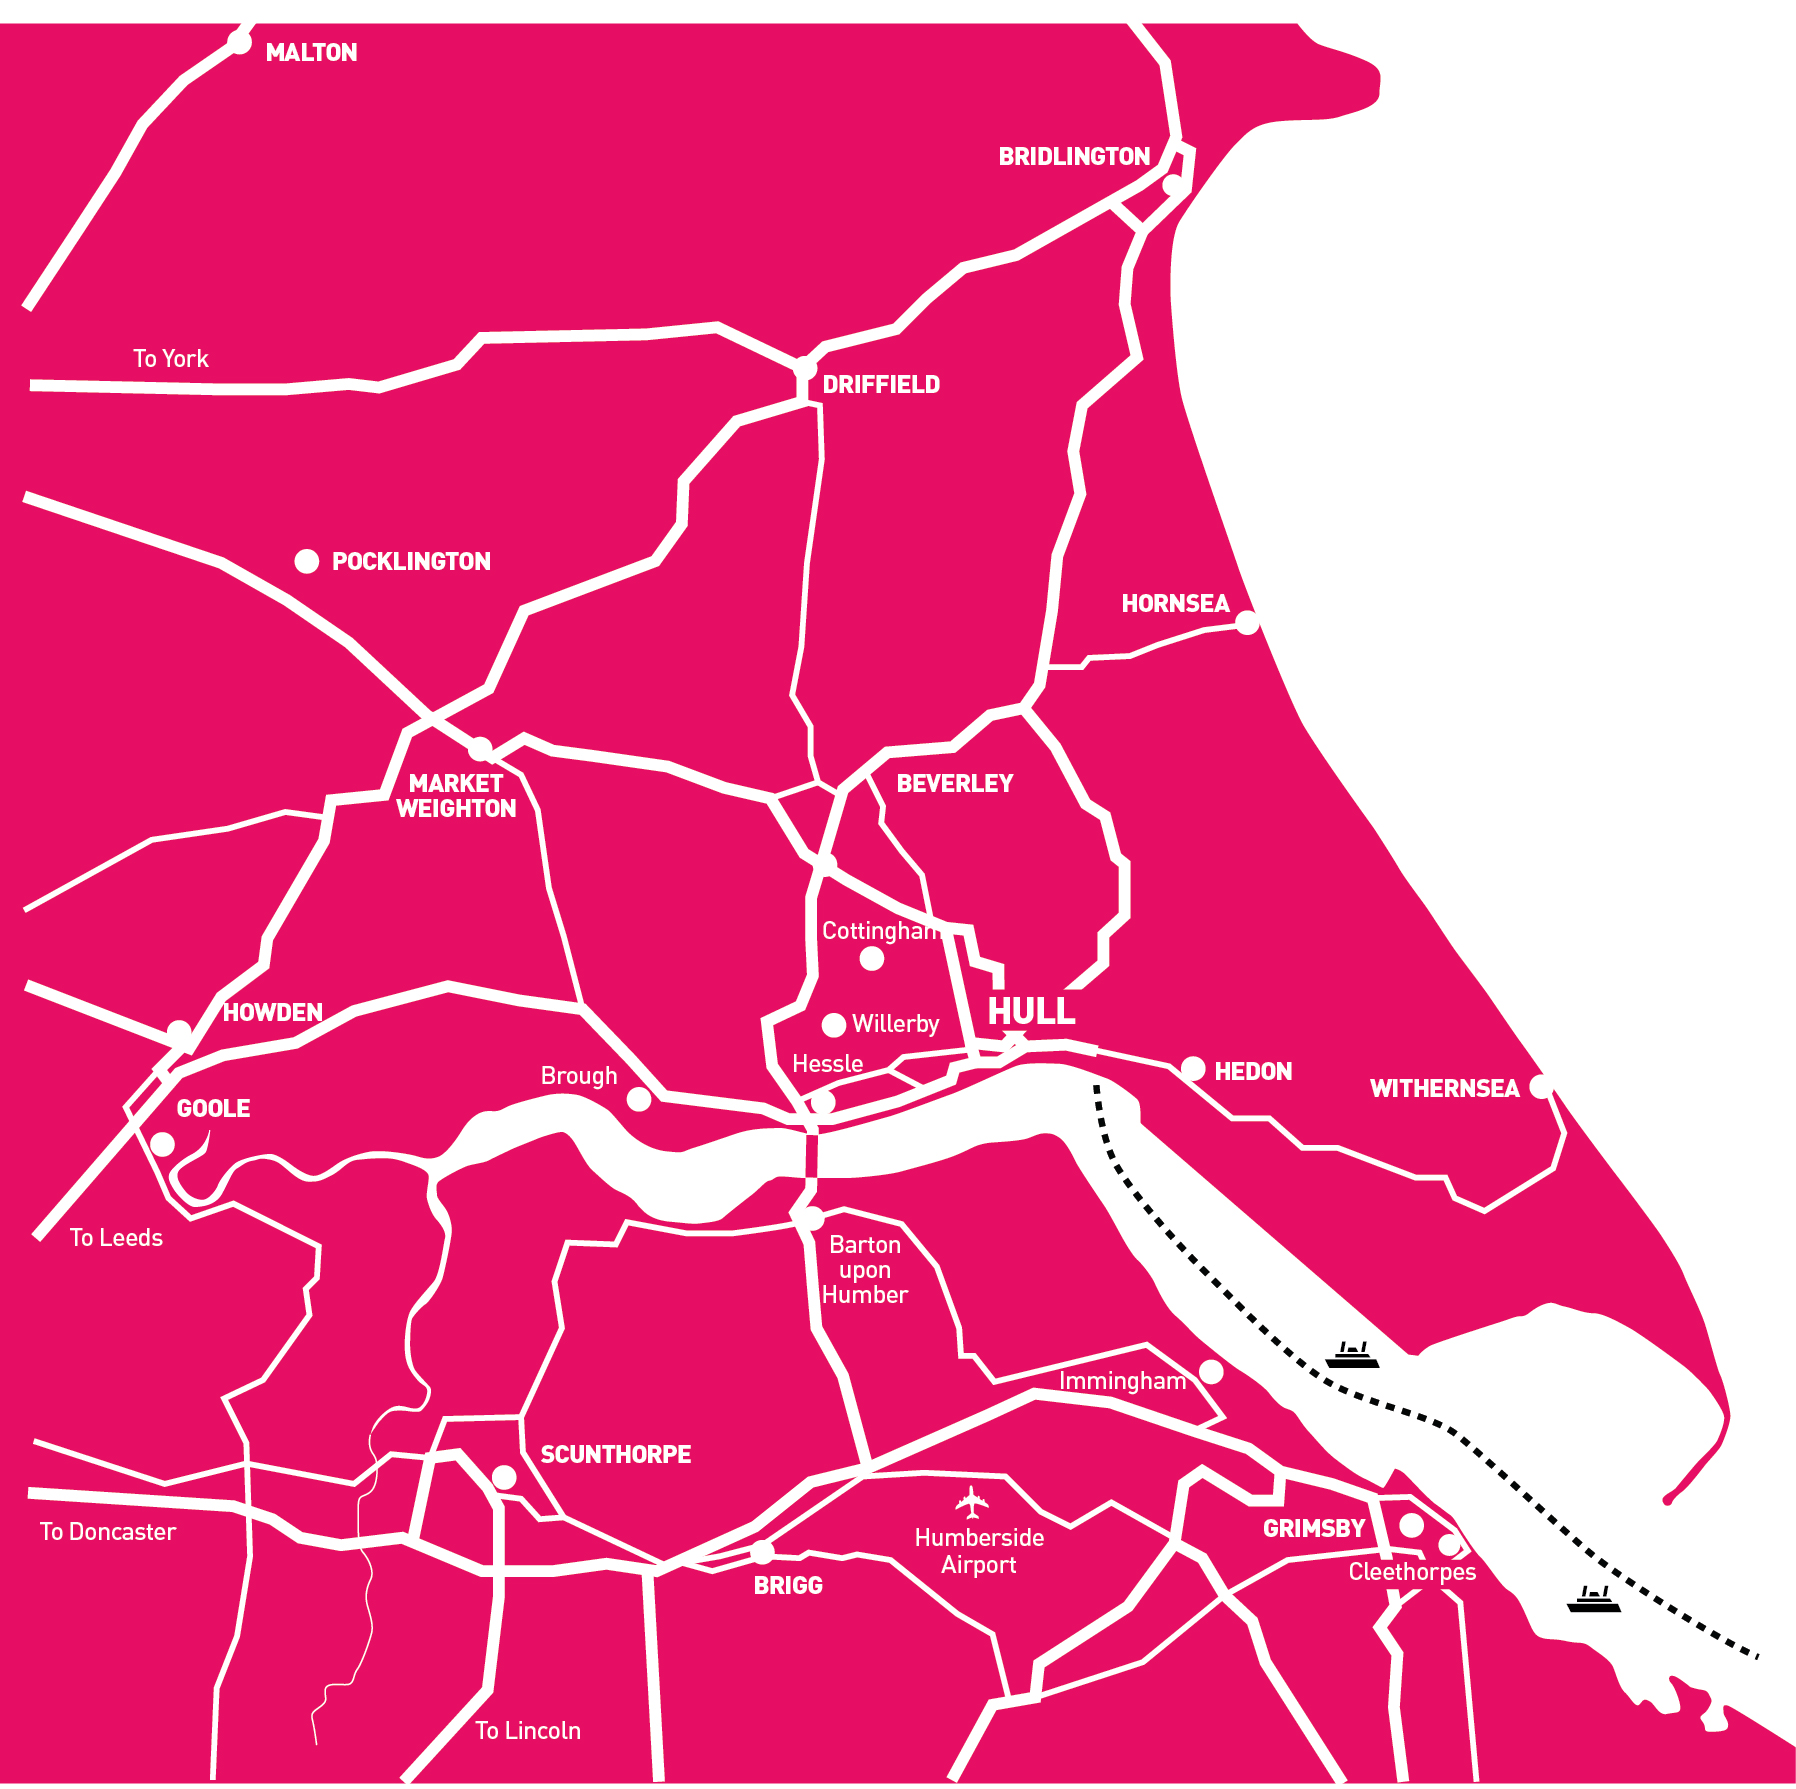 bondholder-humber-region-map